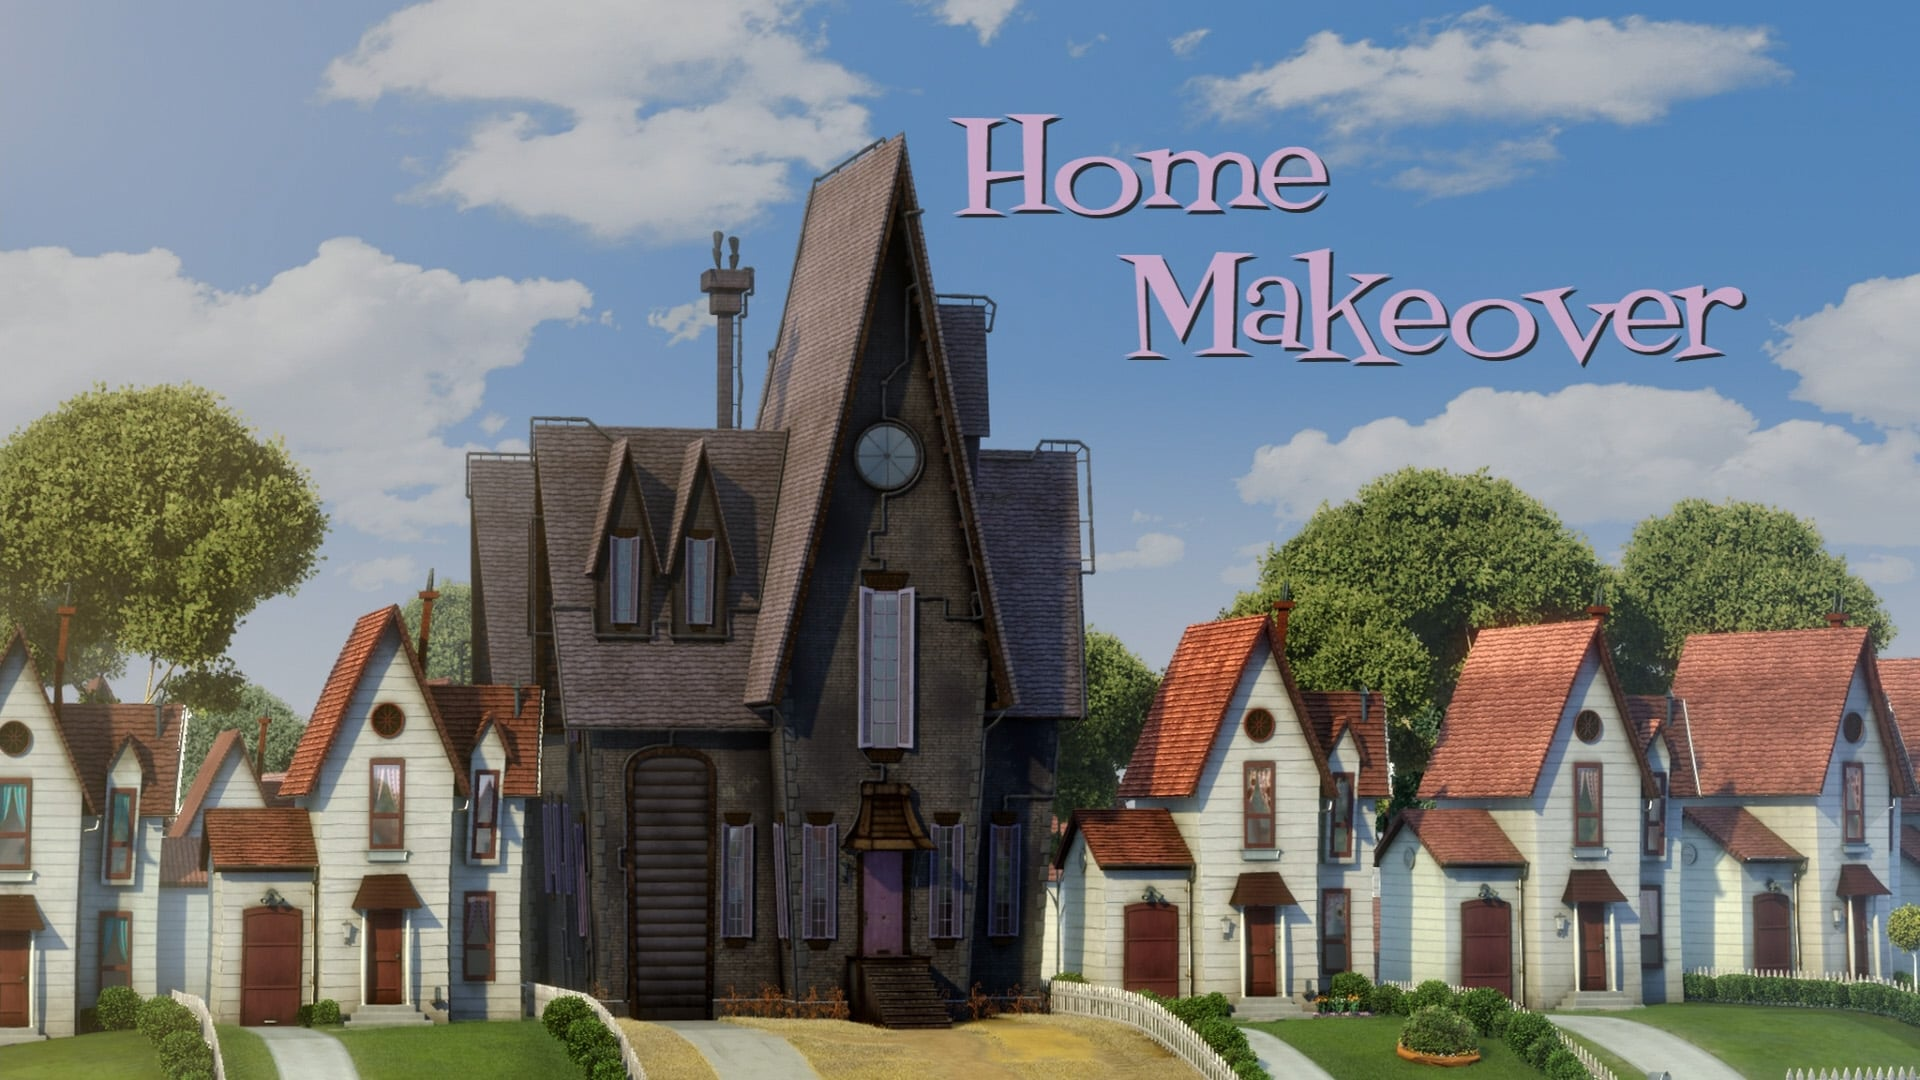 Minions: Home Makeover (2010)